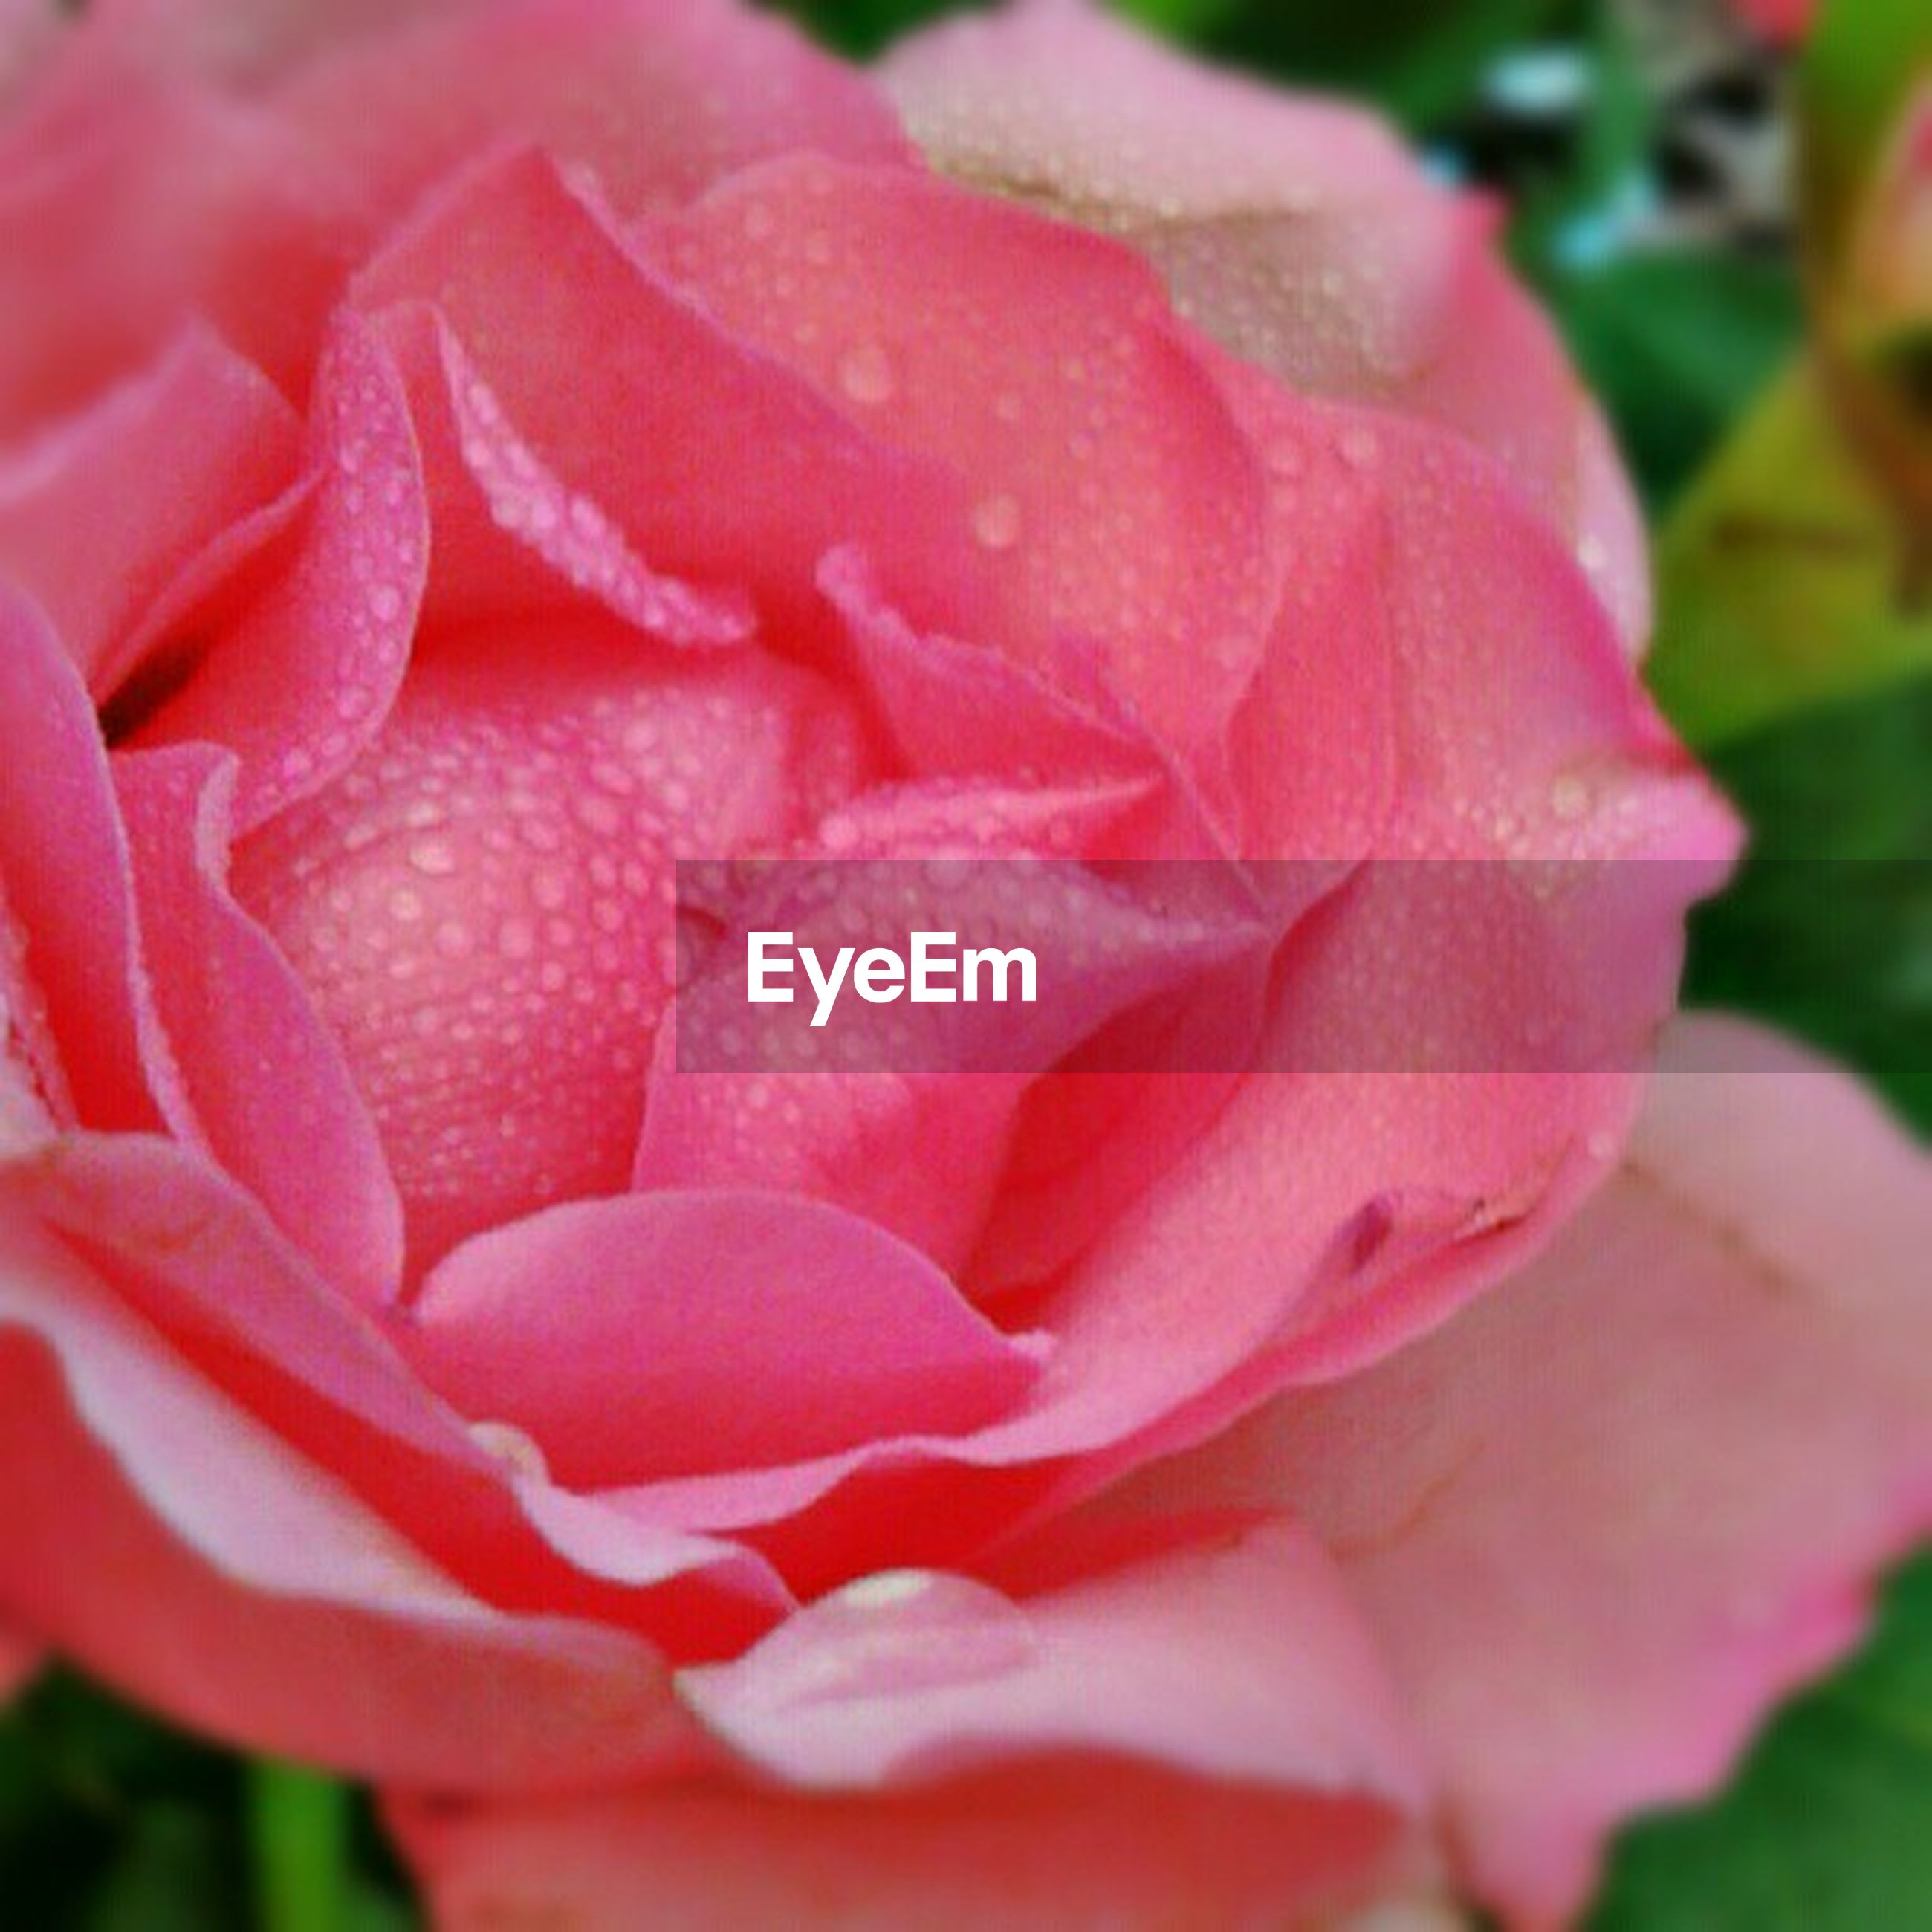 flower, petal, freshness, flower head, fragility, rose - flower, close-up, beauty in nature, growth, single flower, drop, blooming, focus on foreground, nature, pink color, wet, plant, water, red, in bloom